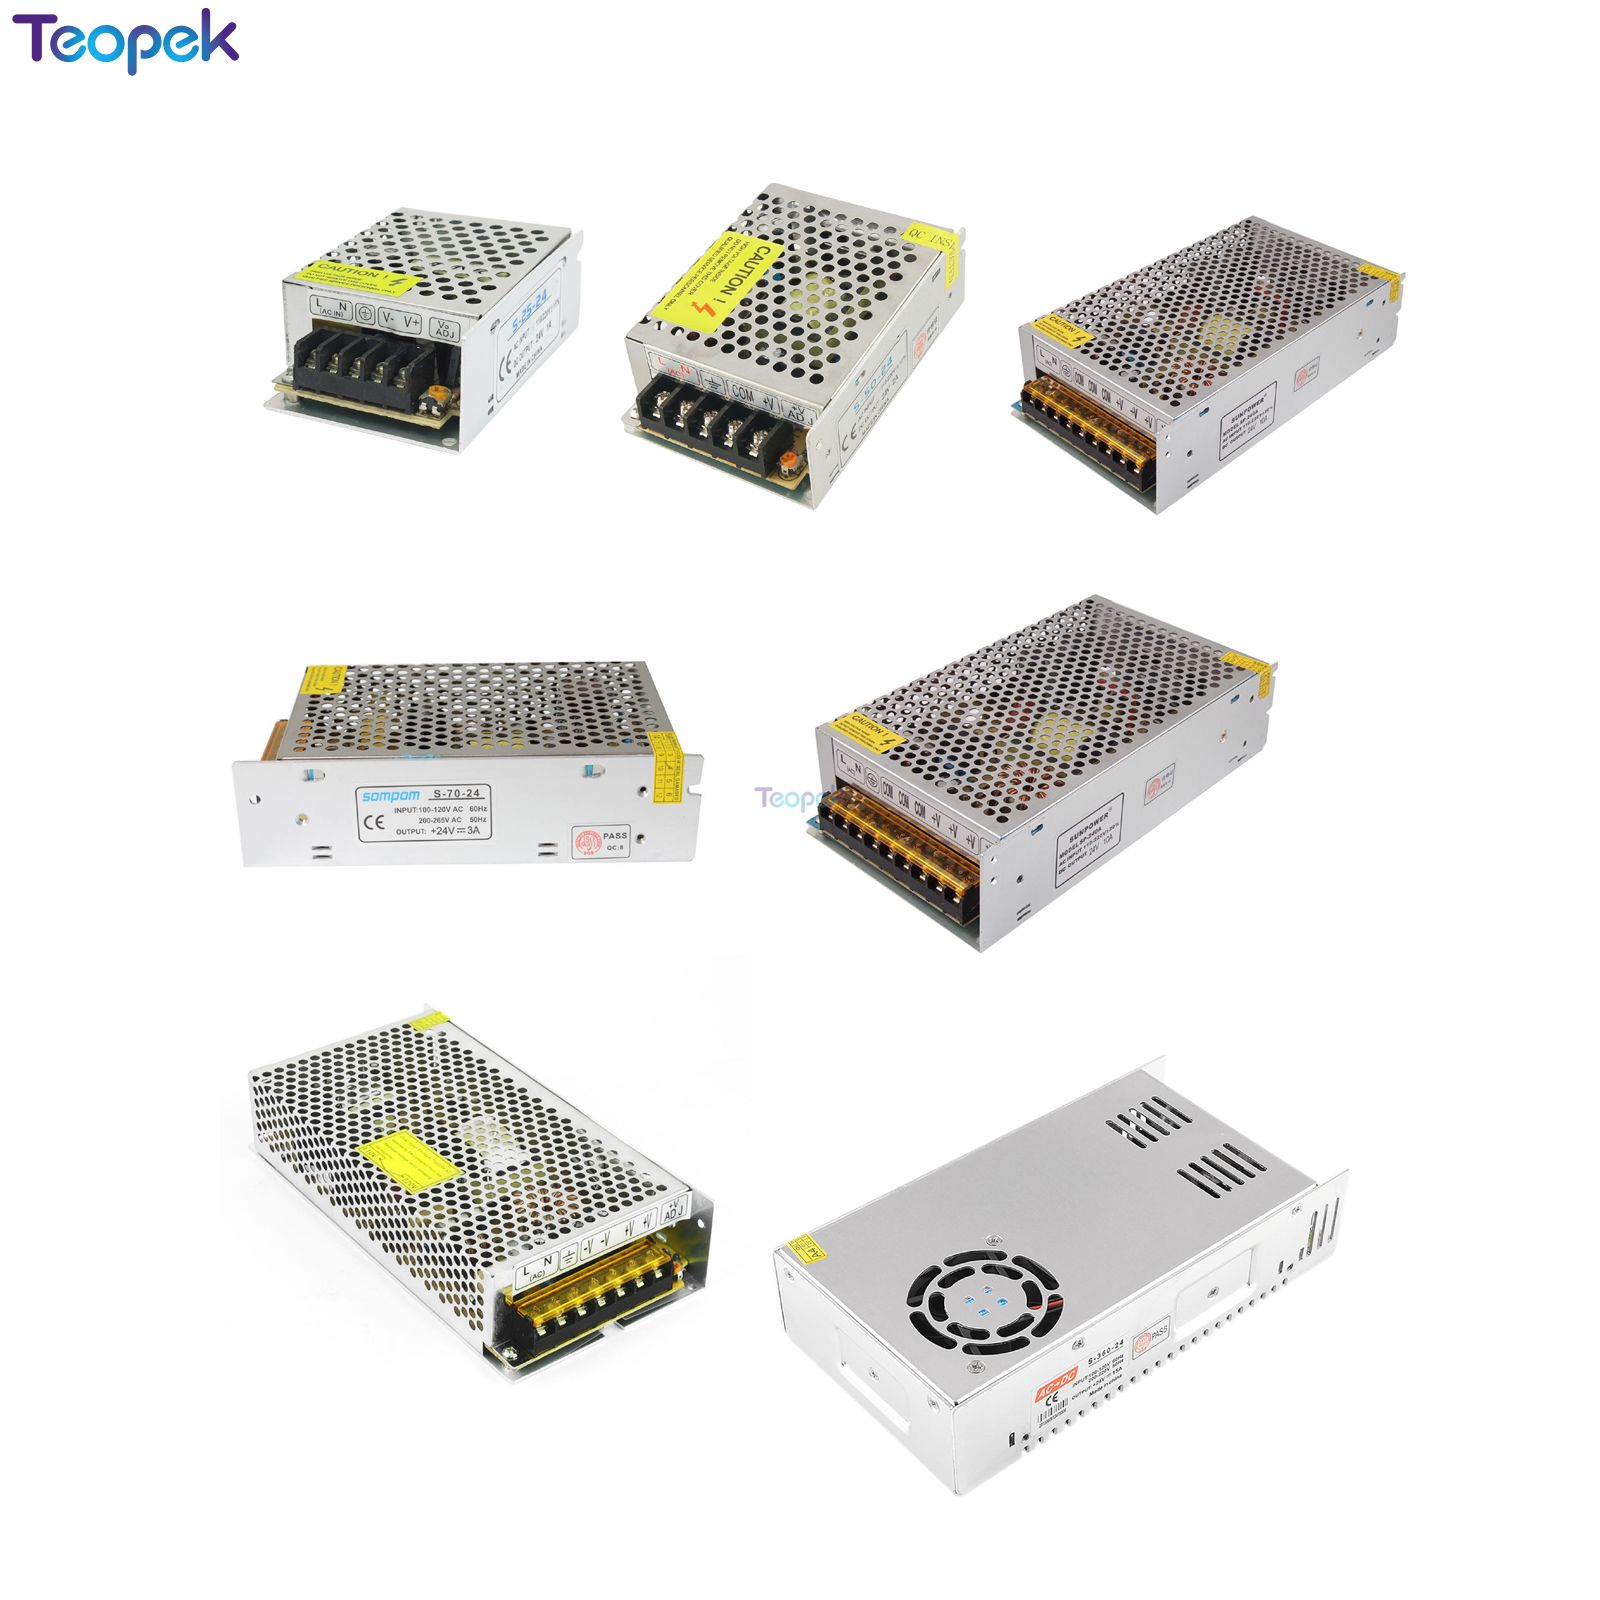 Swiching Power Supply <font><b>DC</b></font> 24V 1A <font><b>2A</b></font> 3A 5A 10A 15A 20A <font><b>24</b></font> <font><b>V</b></font> Volt Power Adapter LED Driver Lighting Transformers For LED Strip Lamp image